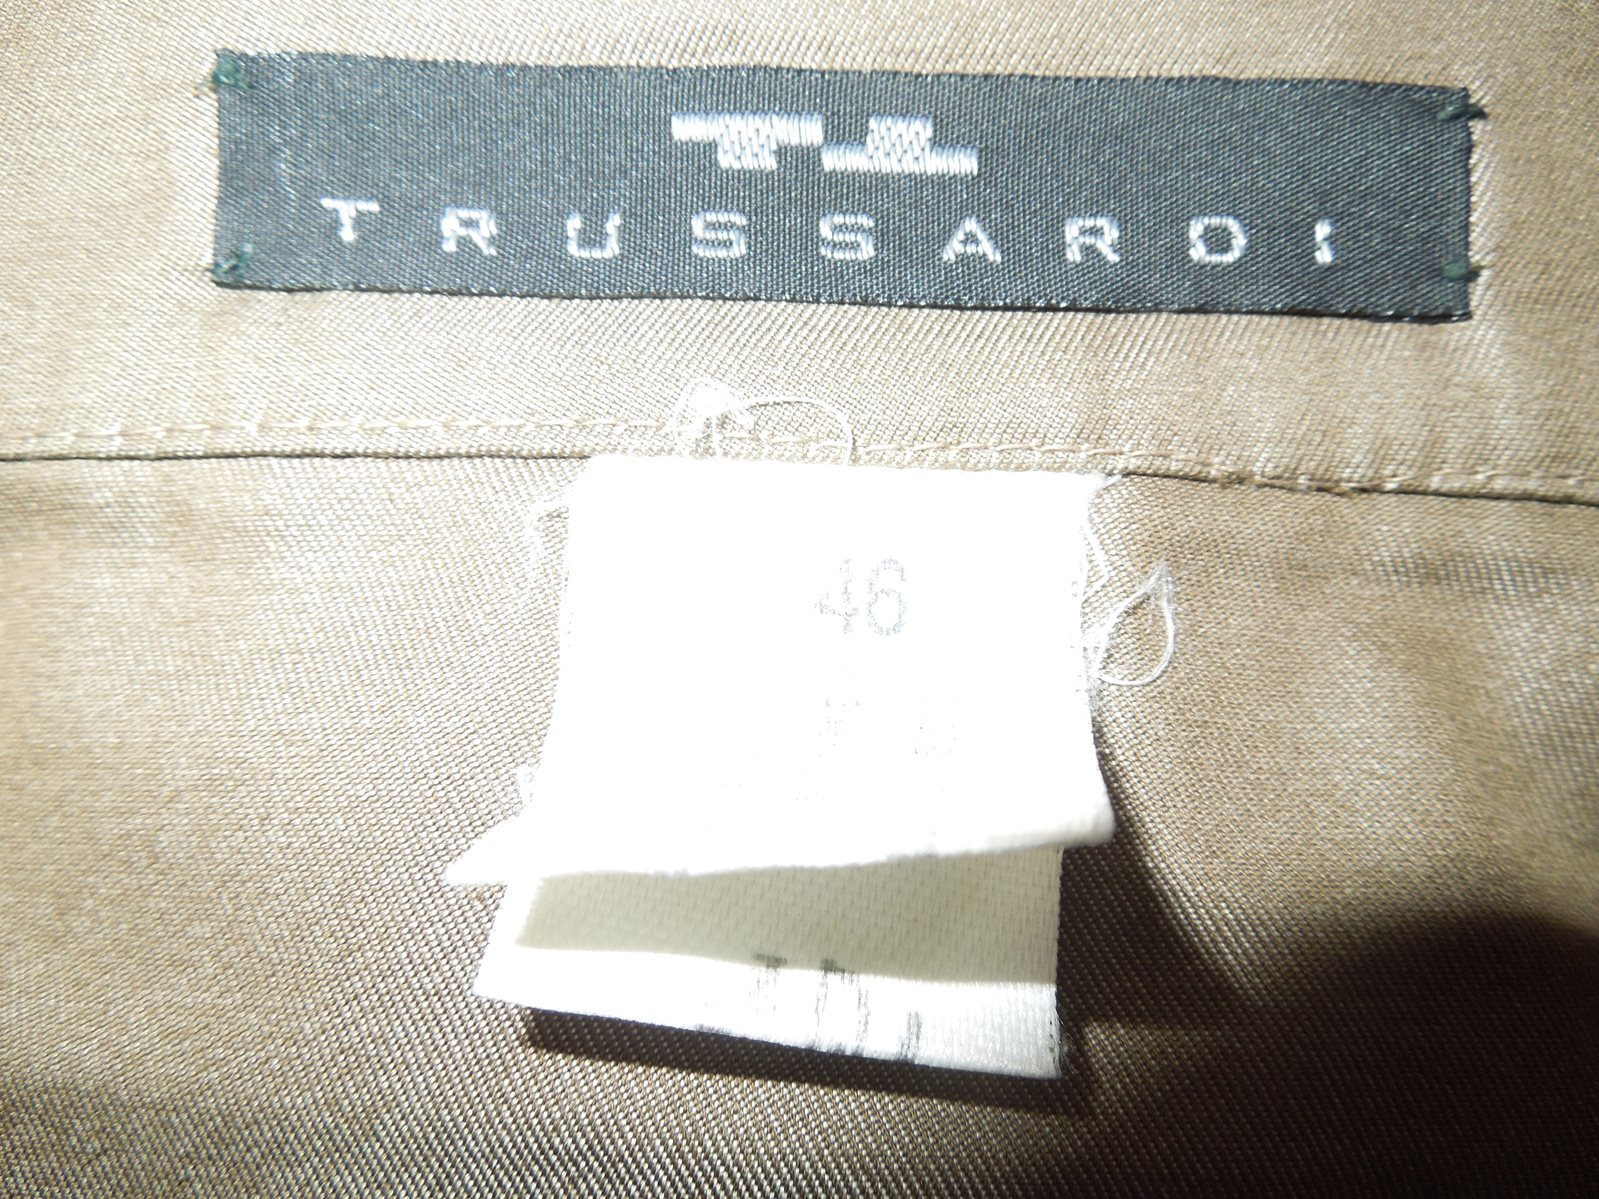 Trussardi - The Loft, London